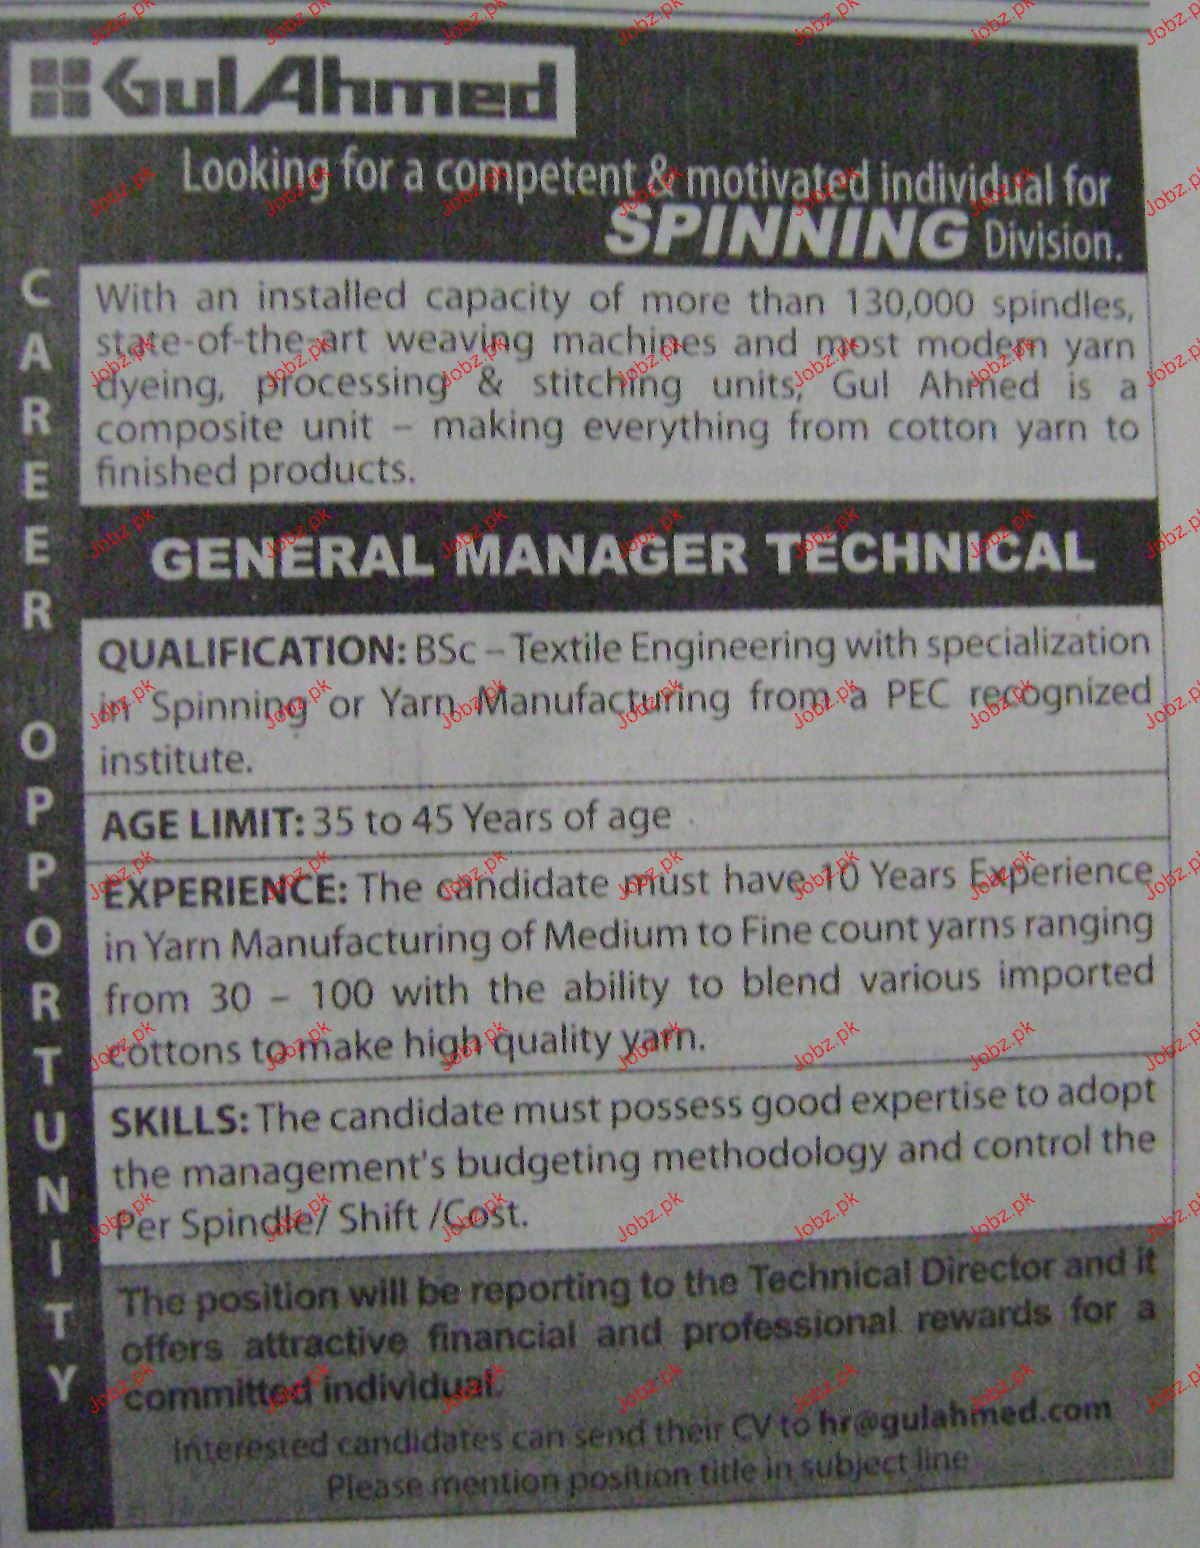 General Manager Technical Job Opportunity